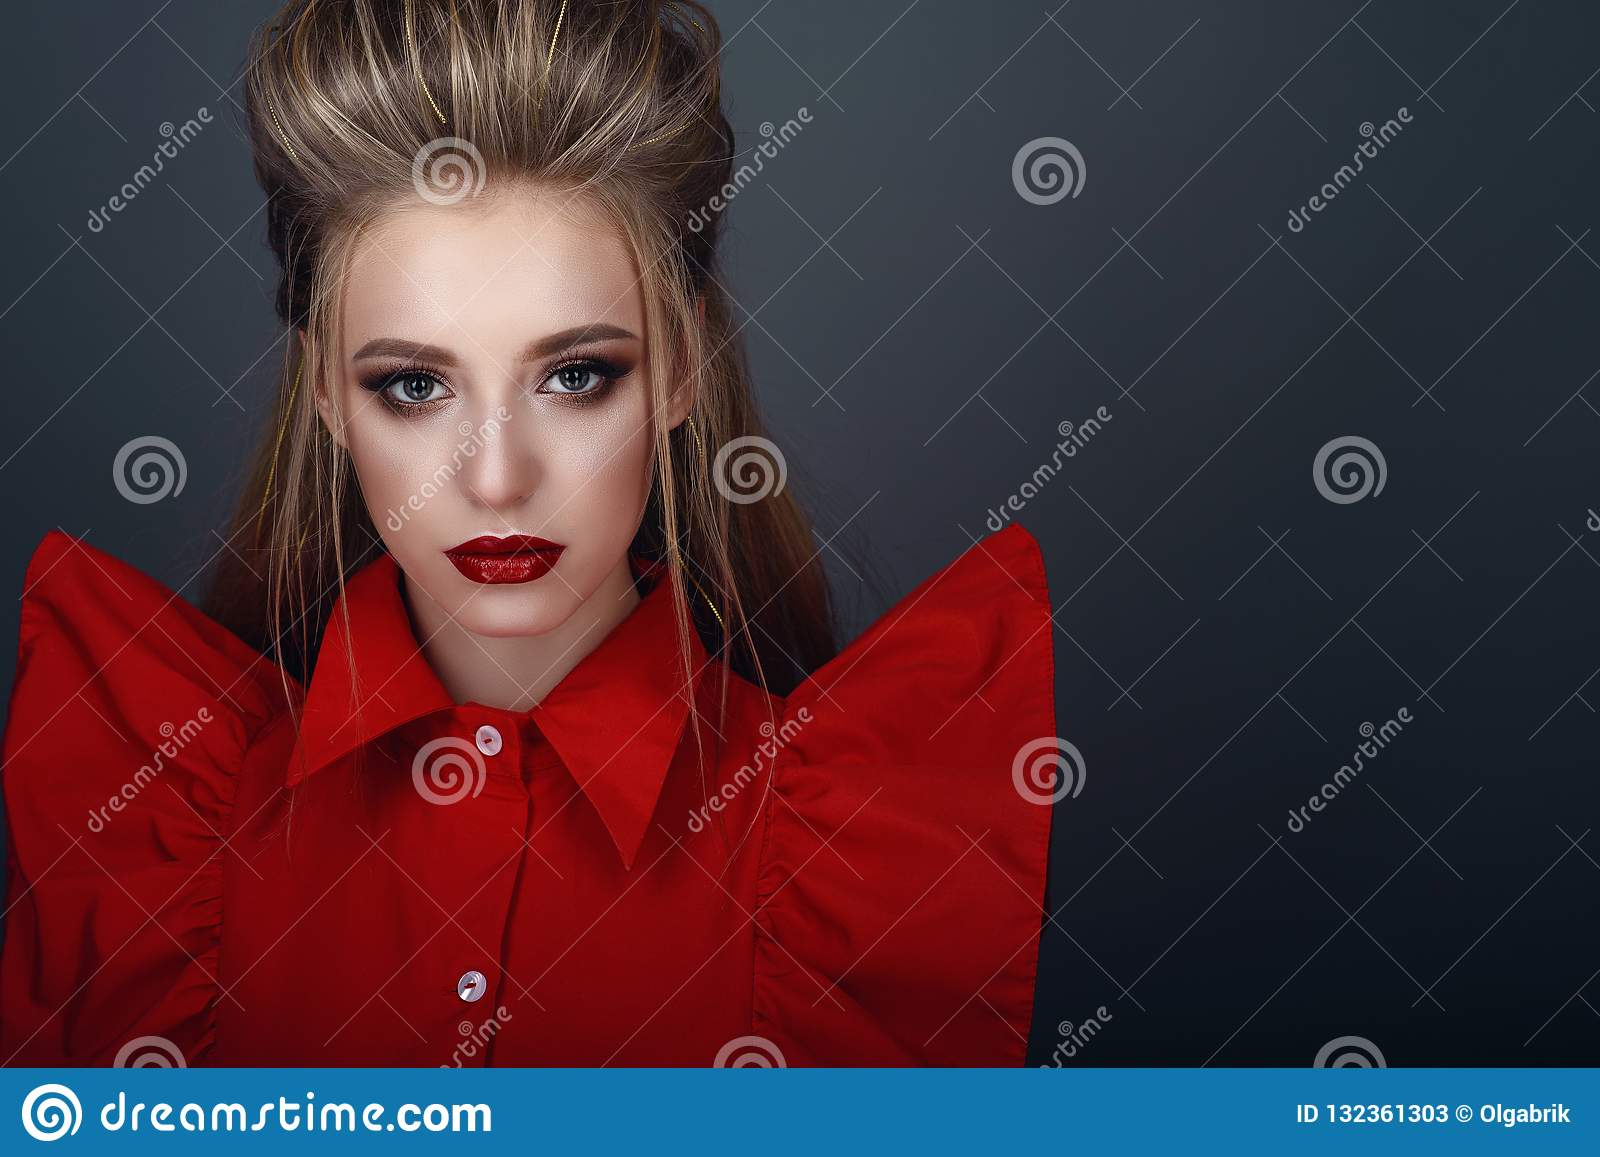 Portrait of beautiful young blond model with perfect provocative make up and stylish creative hairstyle wearing bright red blouse